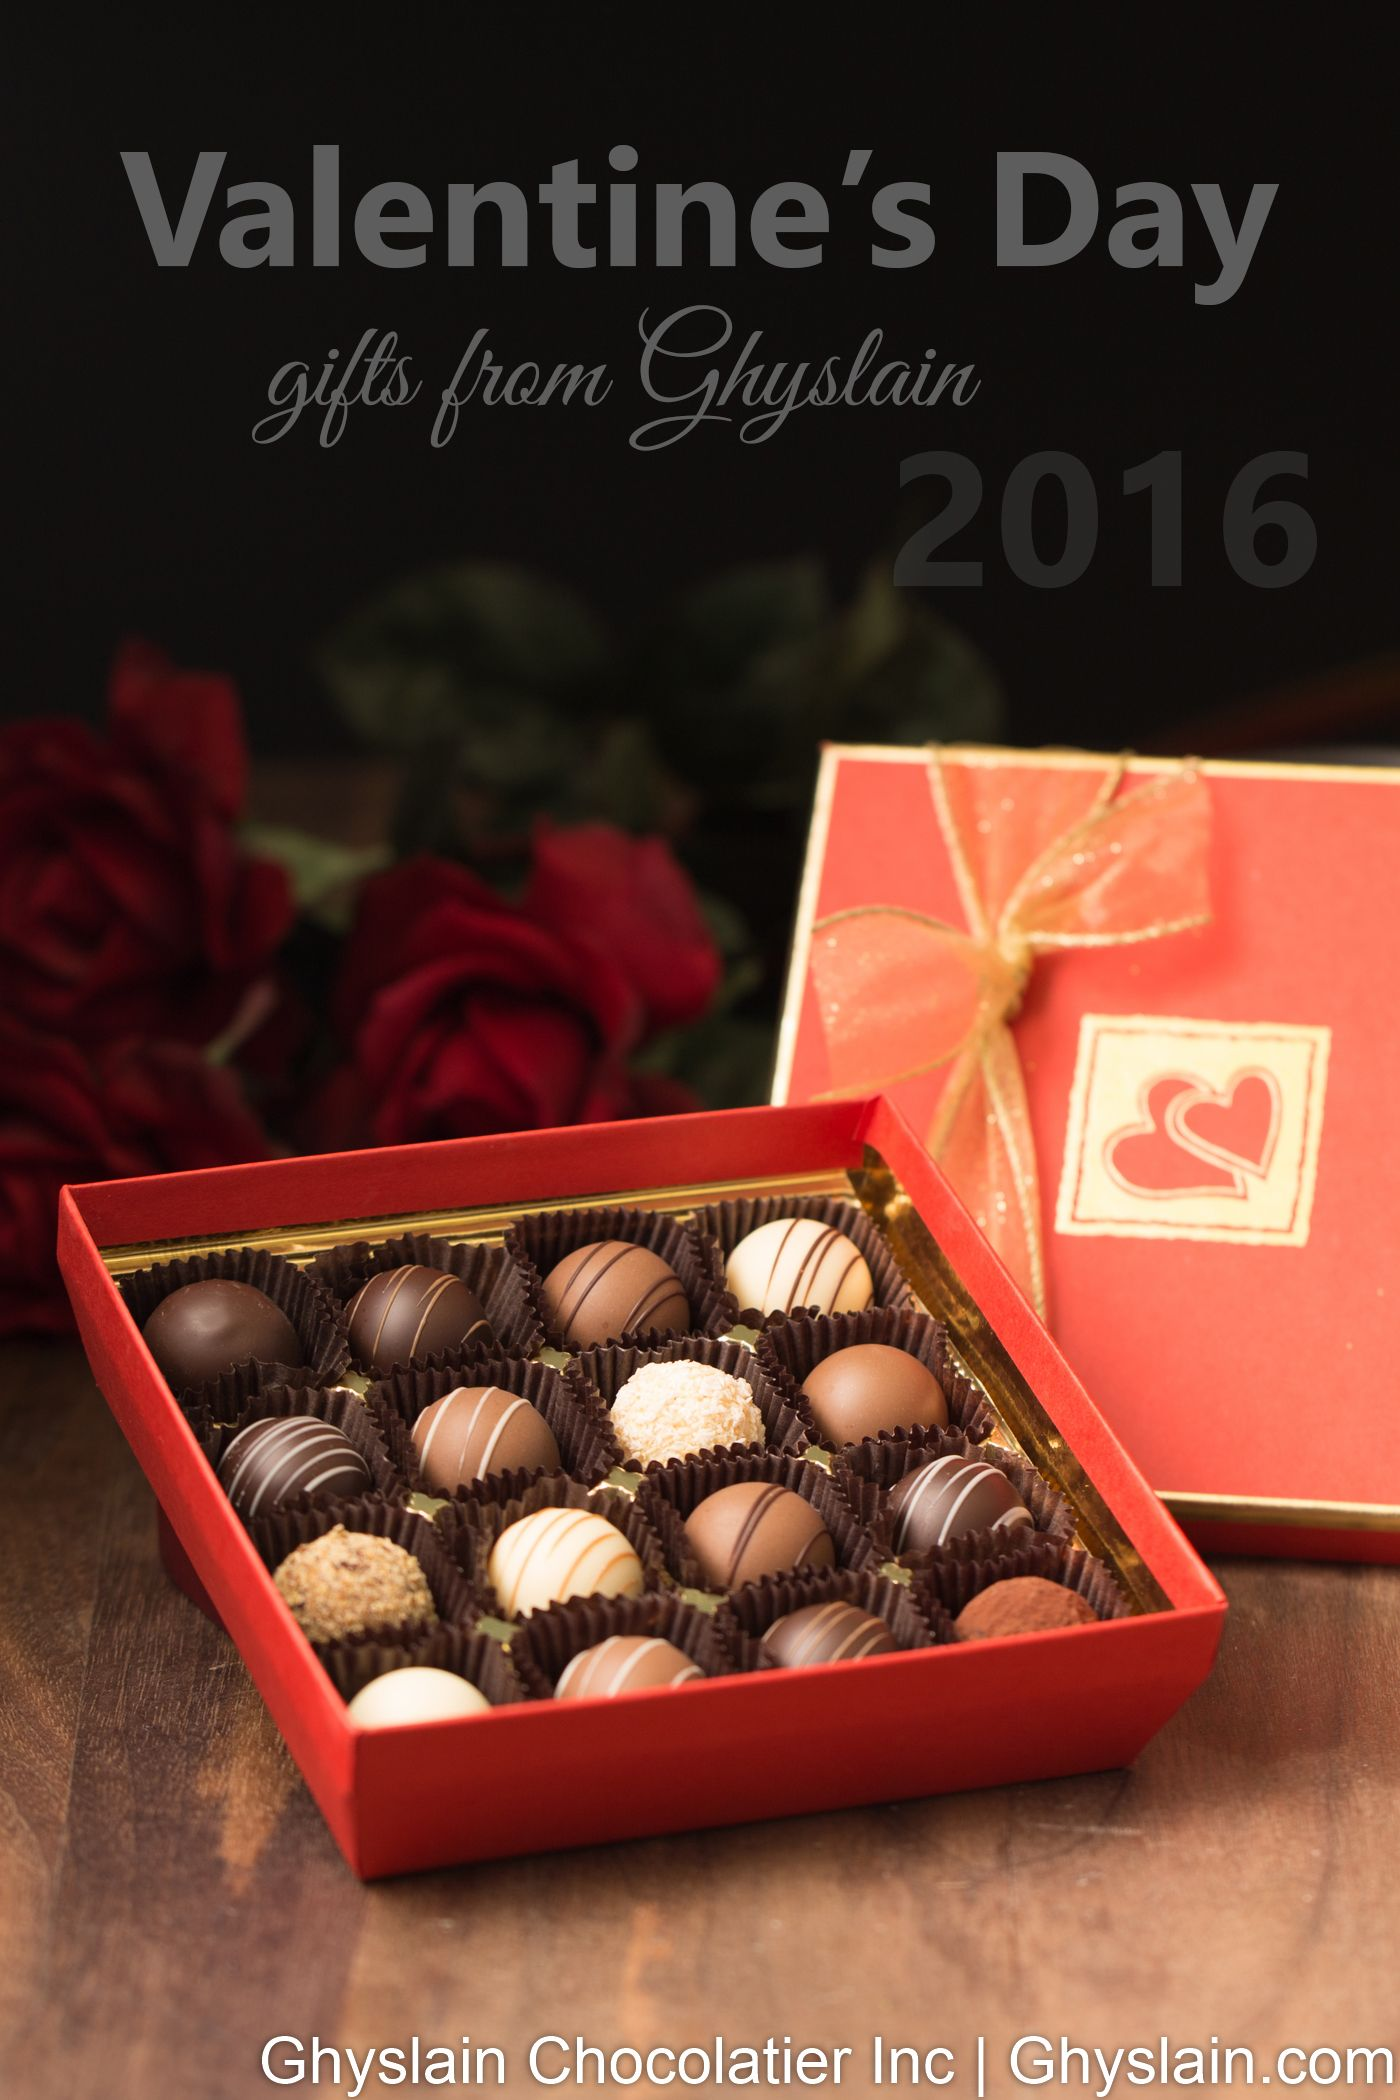 A Beautiful Box Of Gourmet Chocolate Truffles For The Most Beautiful